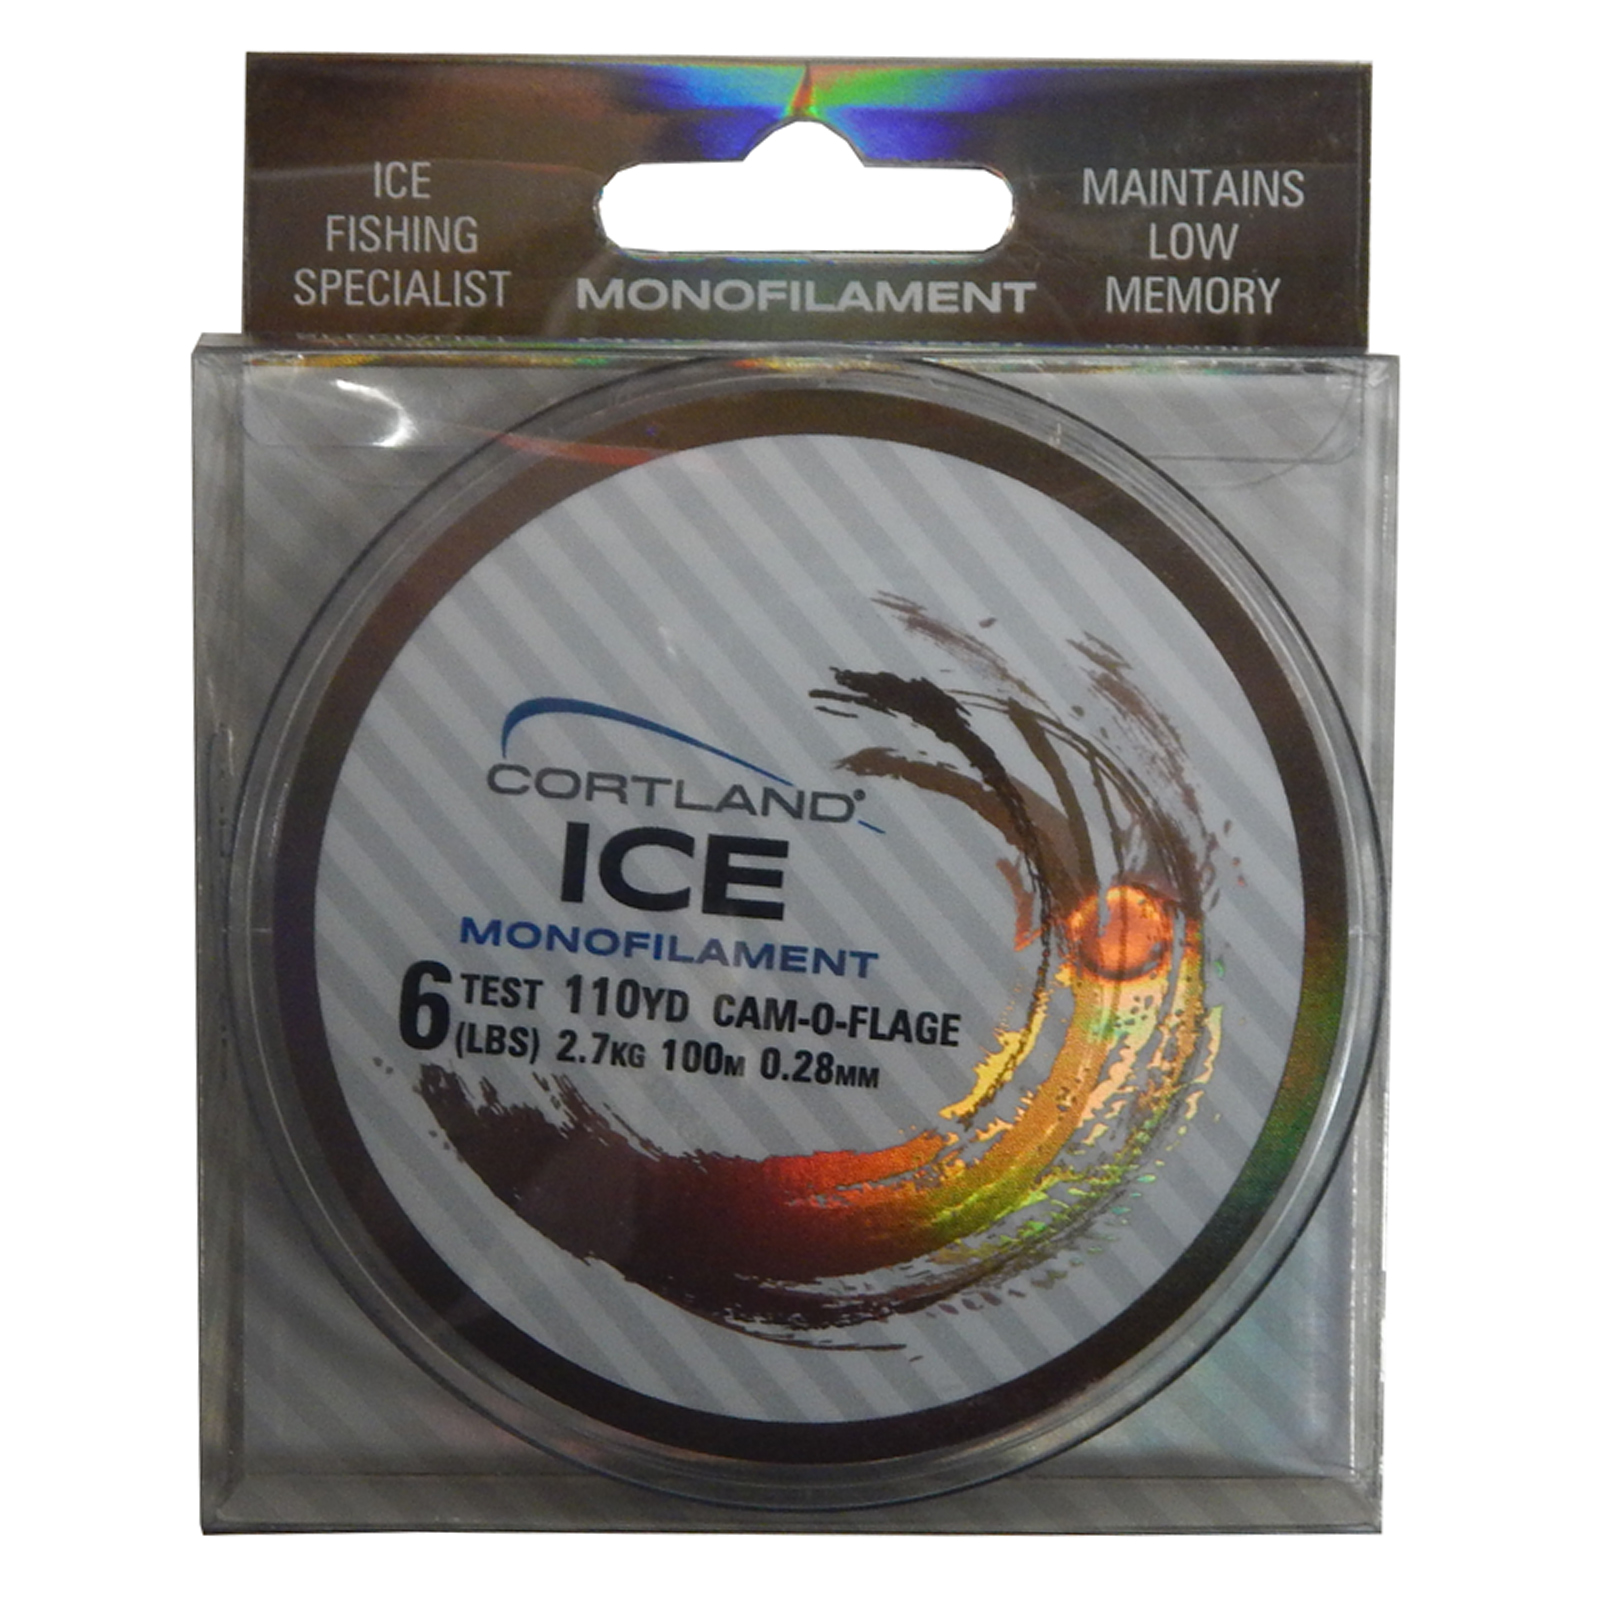 Cortland 283725 ice monofilament fishing line 6 lb test for Fishing line test